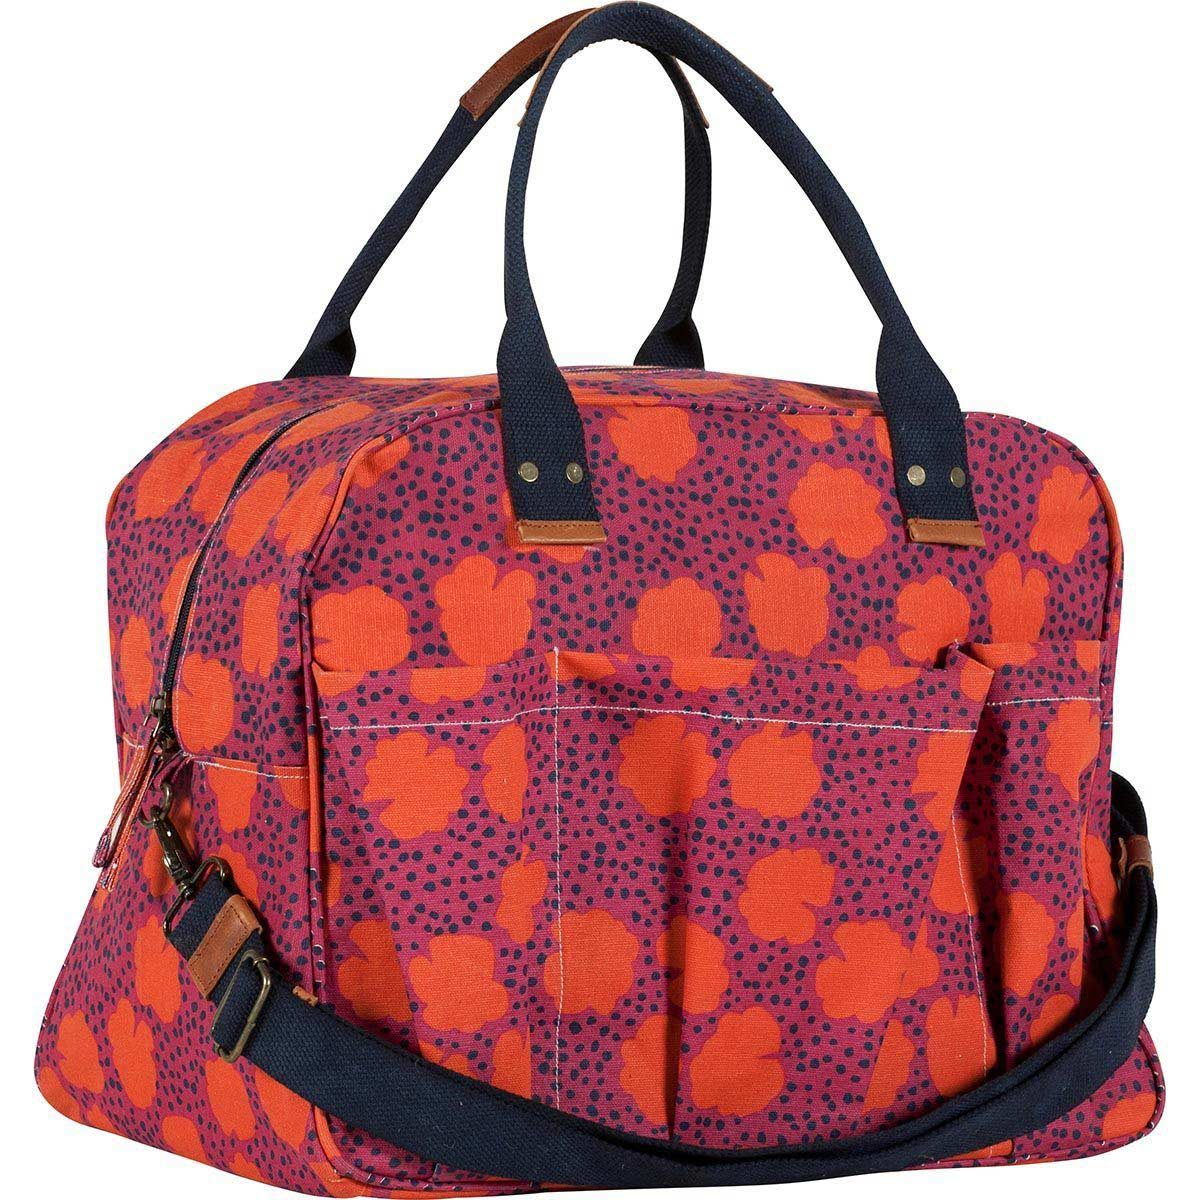 red and purple floral print overnighter tote bag